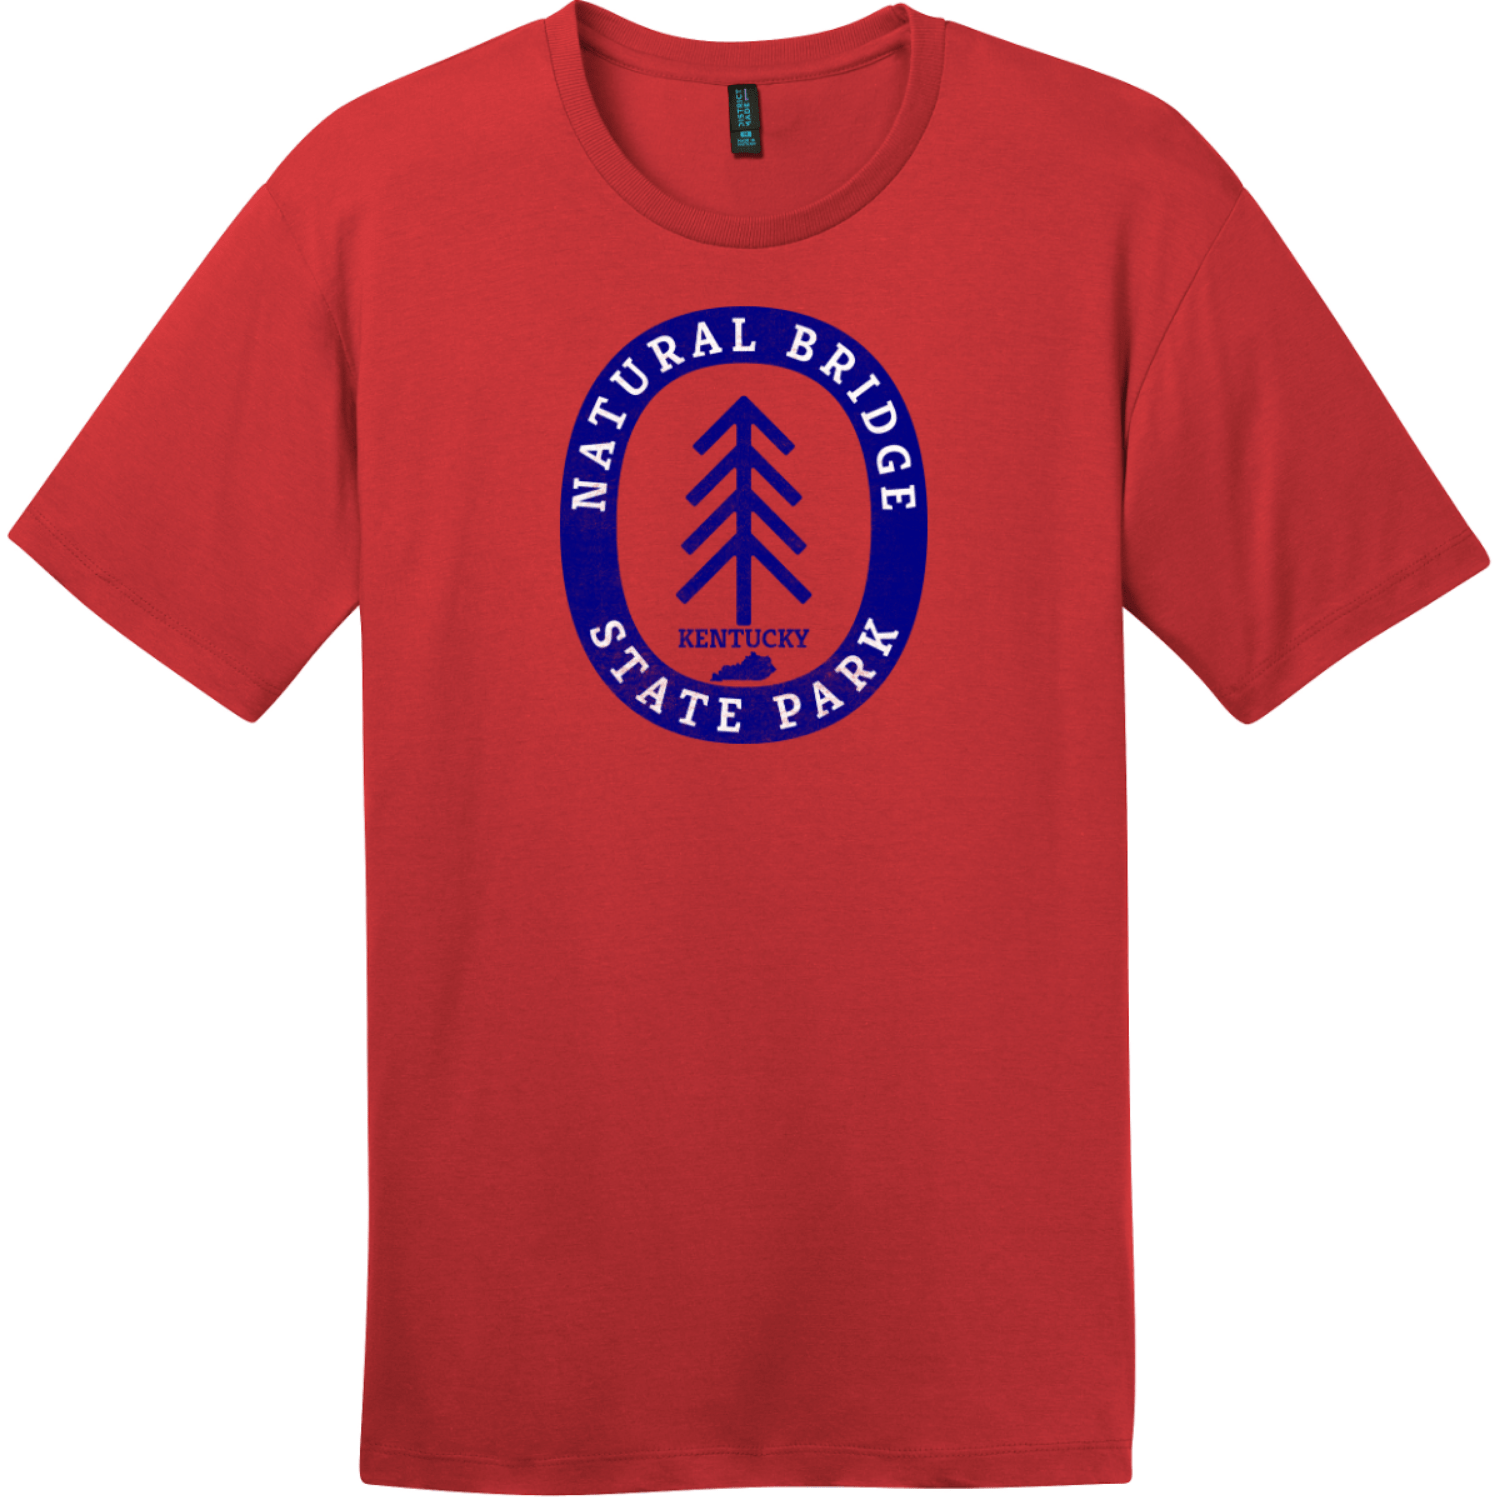 Natural Bridge State Park T-Shirt Classic Red District Perfect Weight Tee DT104